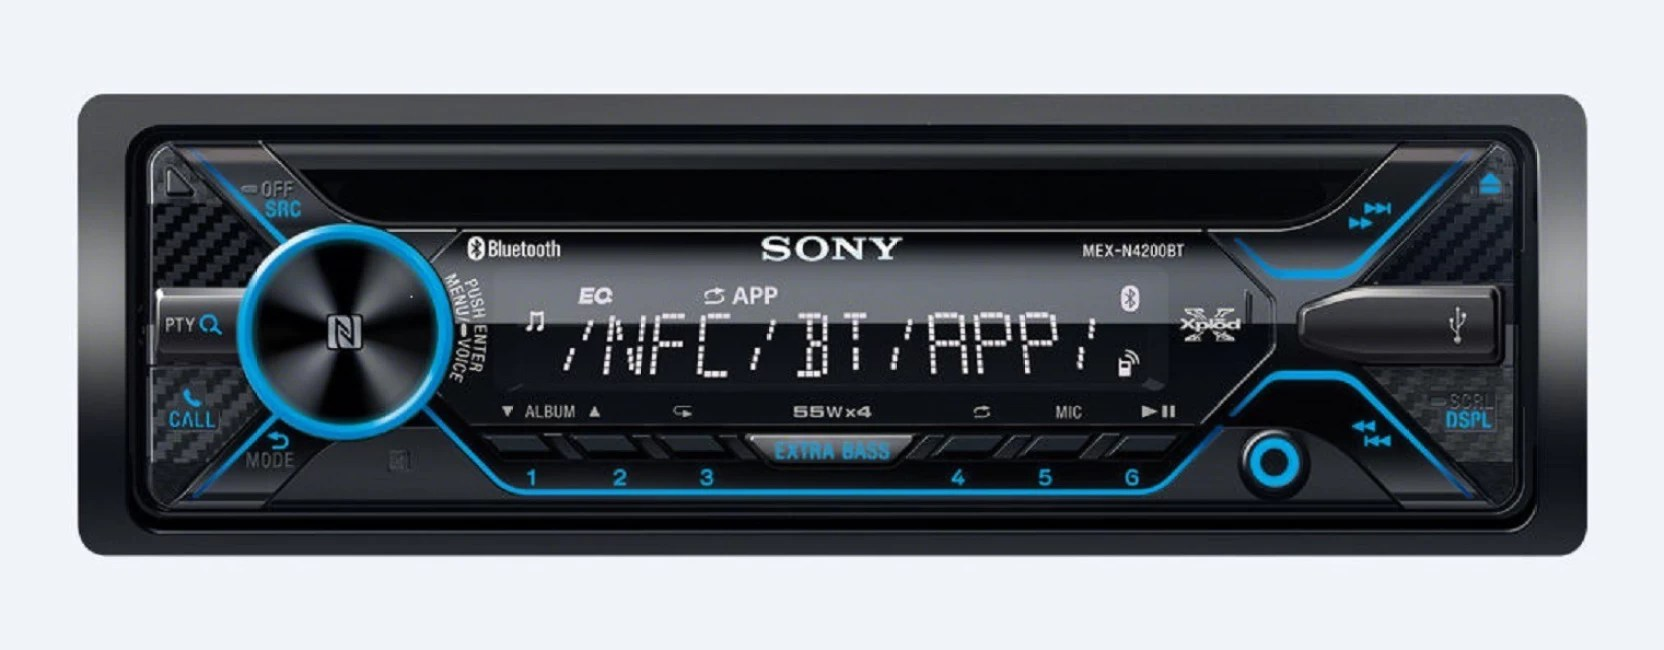 hight resolution of sony mex n4200bt car stereo price in india buy sony mex n4200bt add to cart